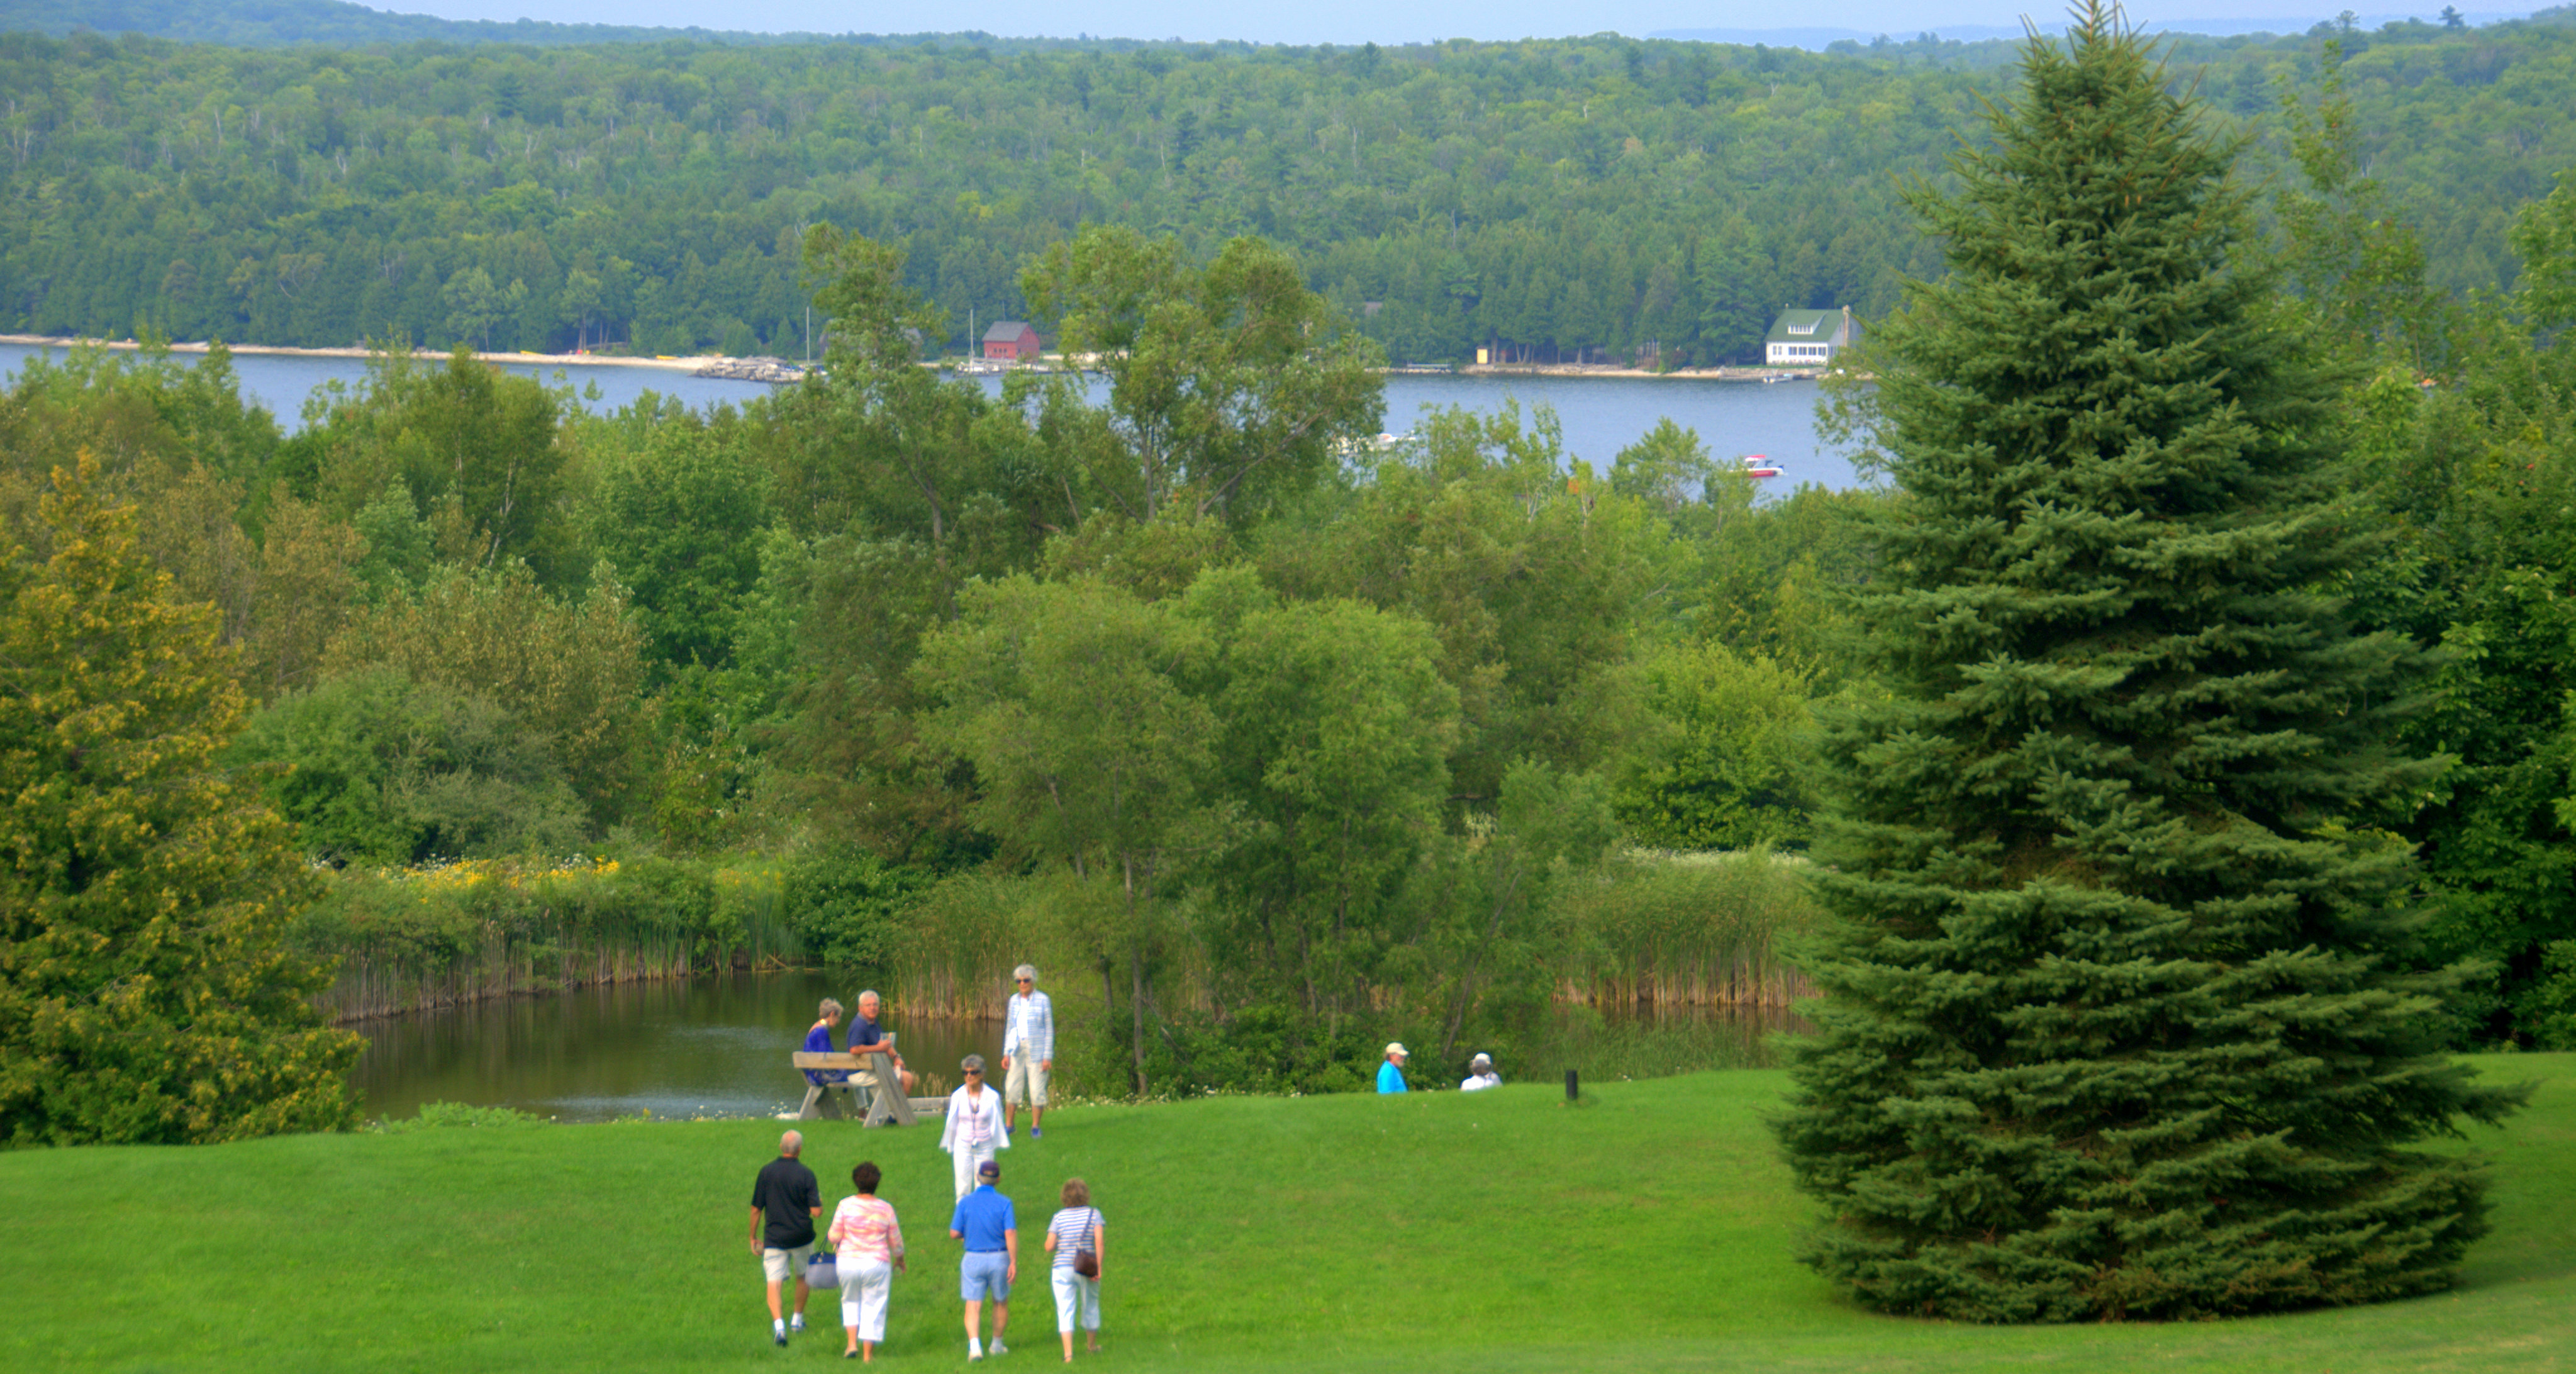 Guests stroll through the Grnad View Park during Annual Gathering.  Photo by David Harsh